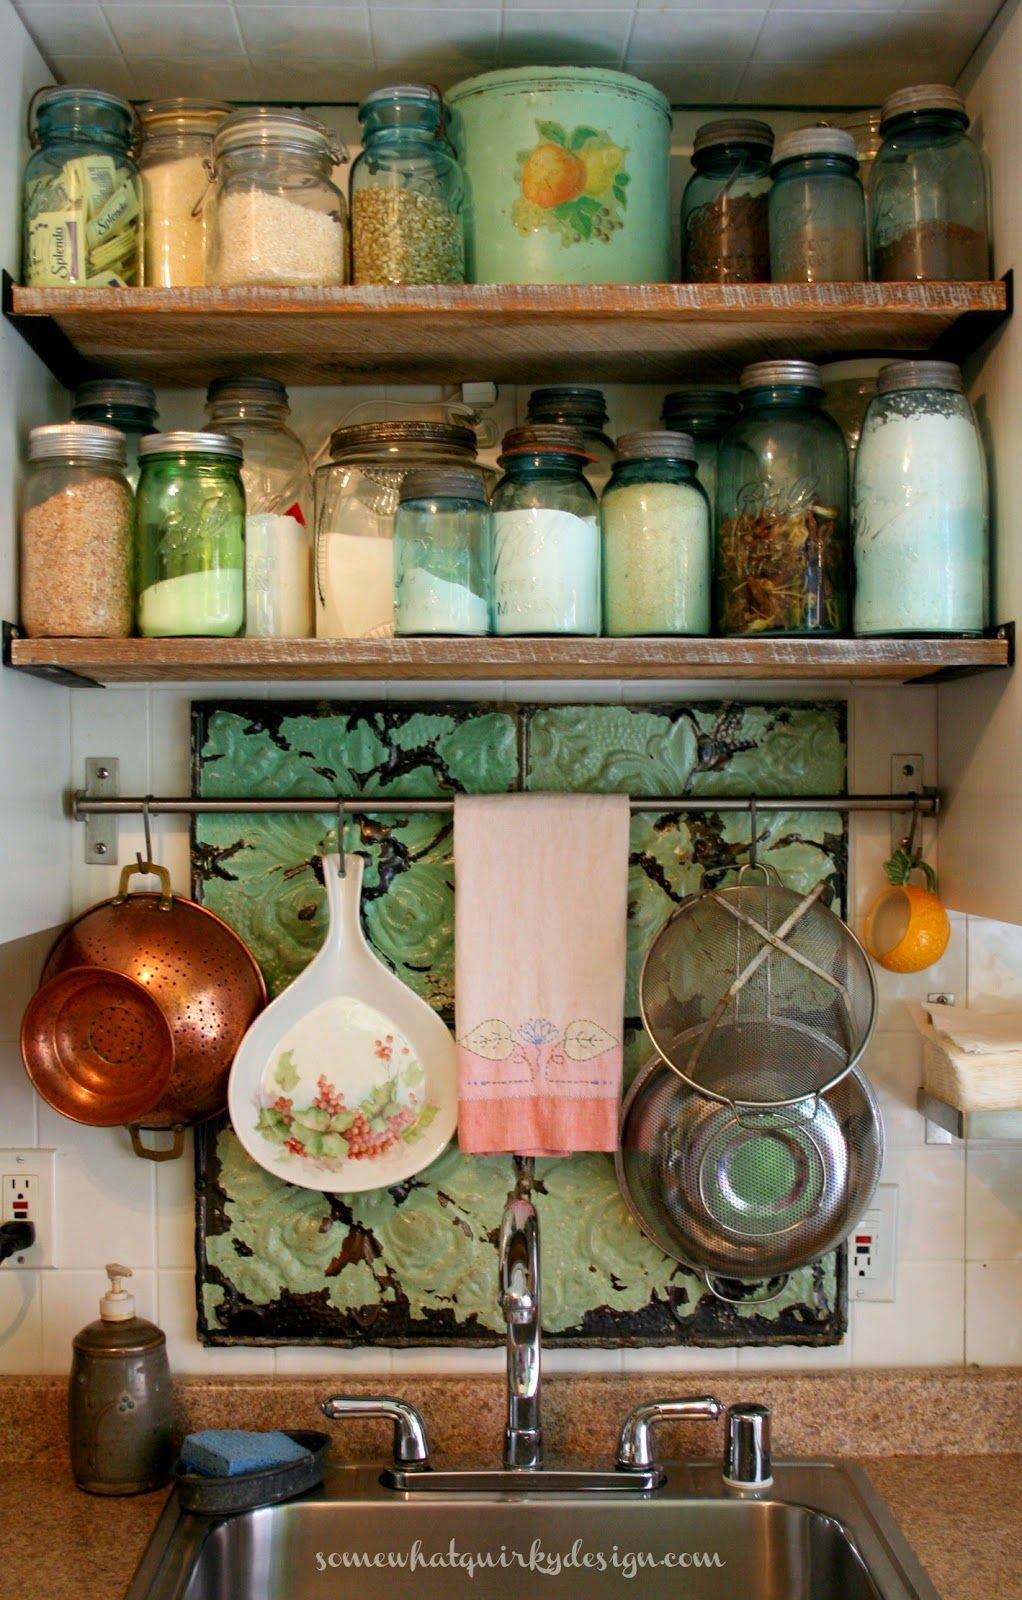 Somewhat Quirky How To Make Open Shelving Between